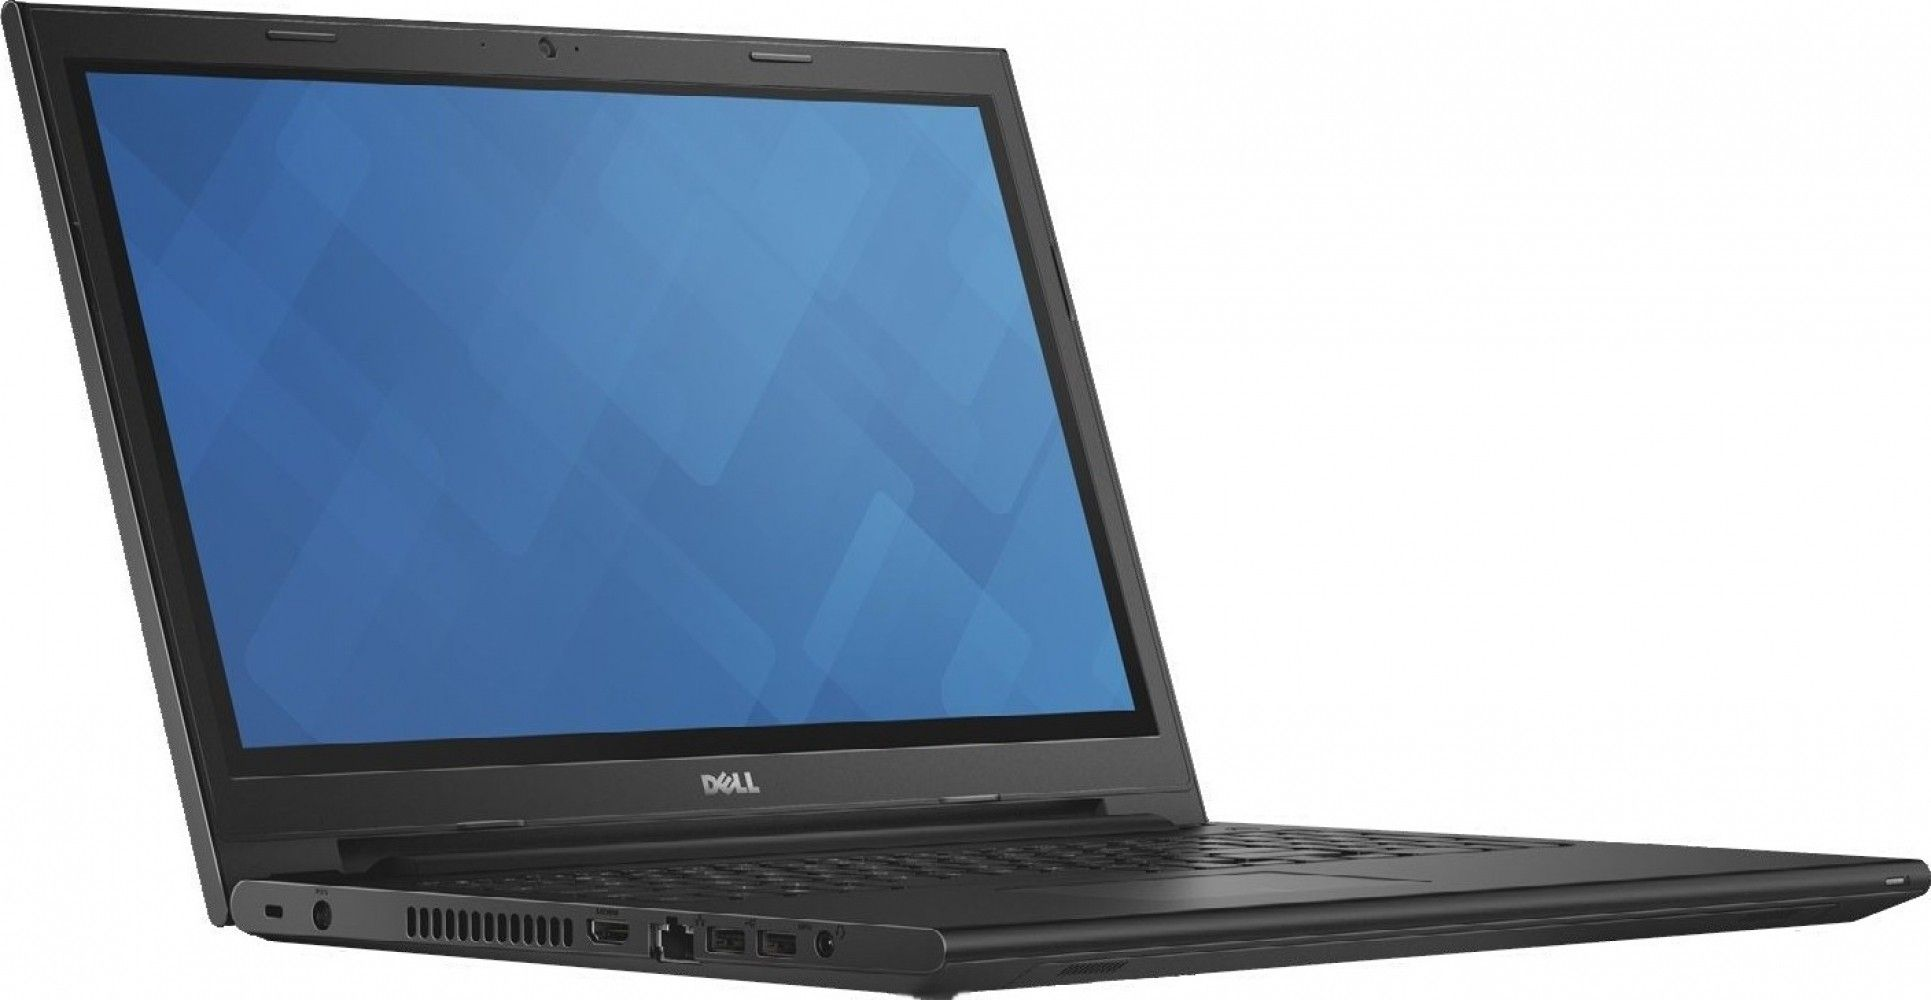 Ноутбук Dell Inspiron 3542 (I35345DIL-46) Black - 28903